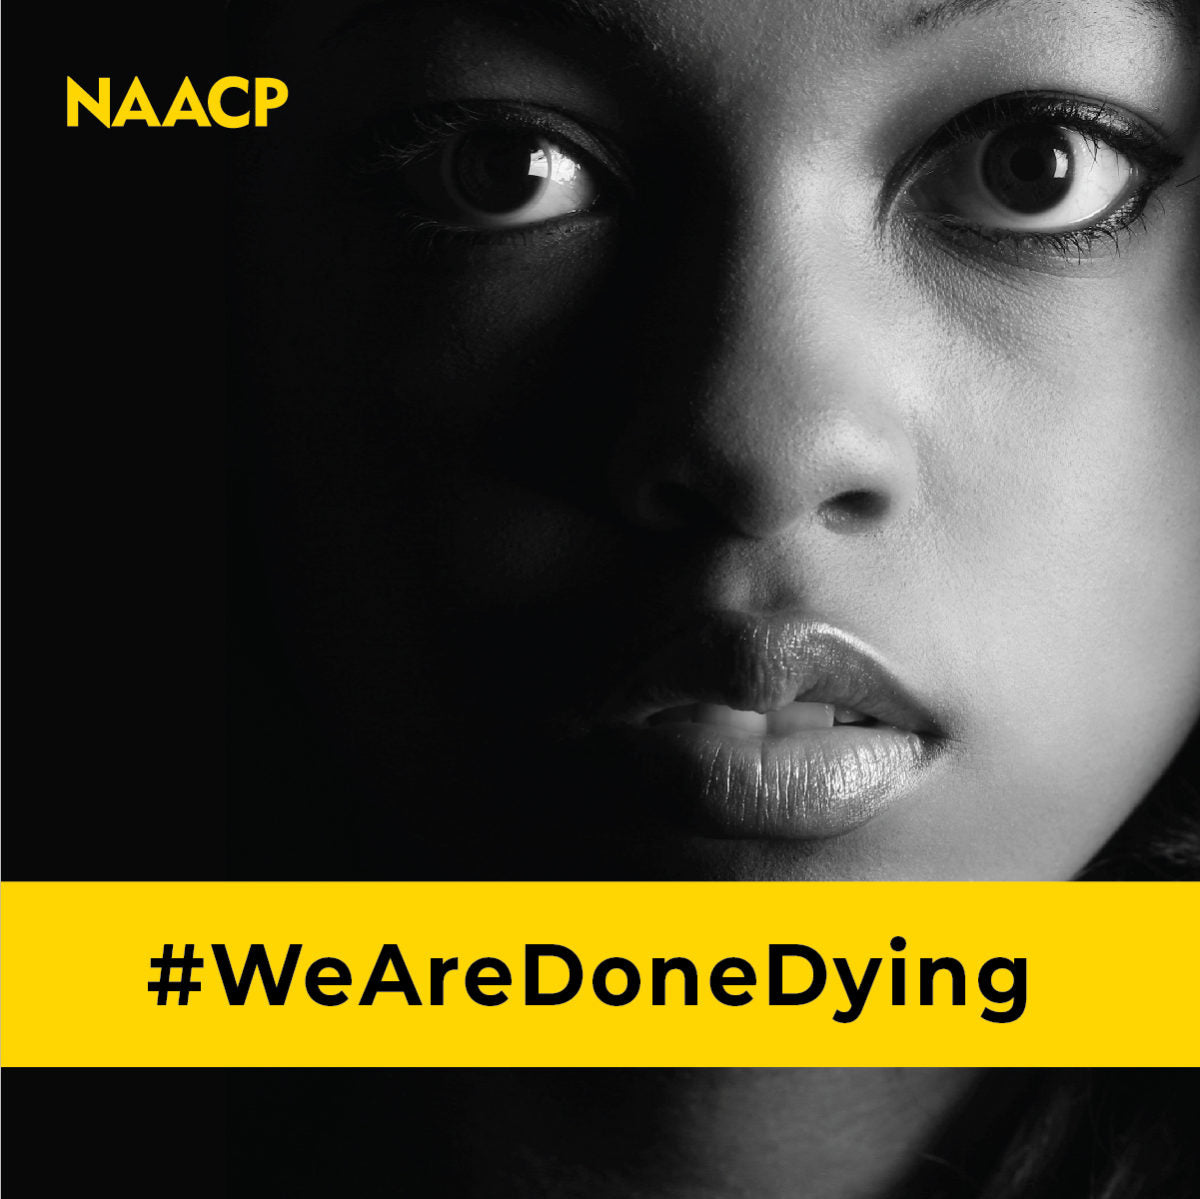 #WeAreDoneDying NAACP photo